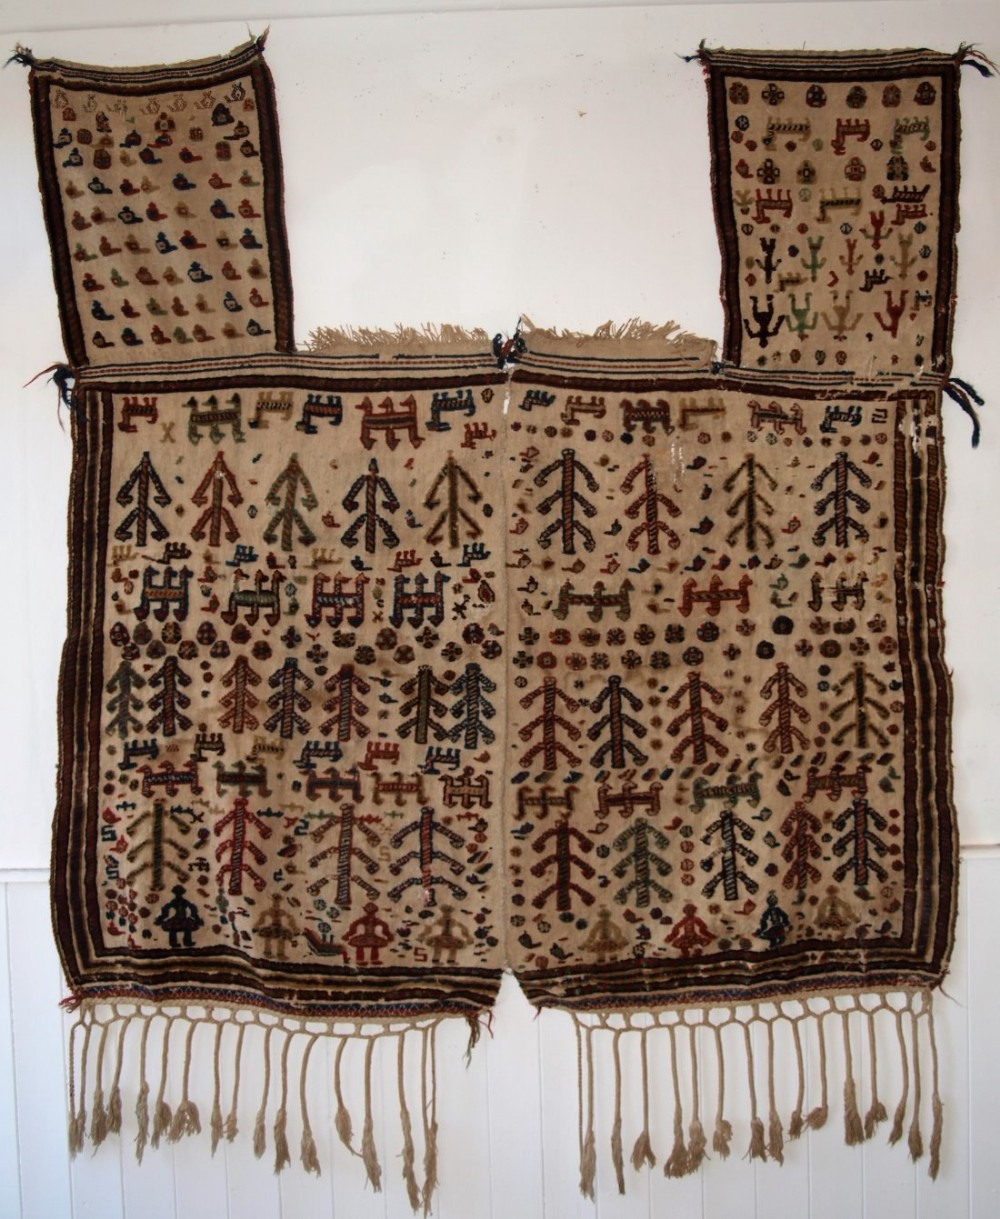 antique persian qashqai tribal horse cover blanket or rug beautifully decorated circa 1890